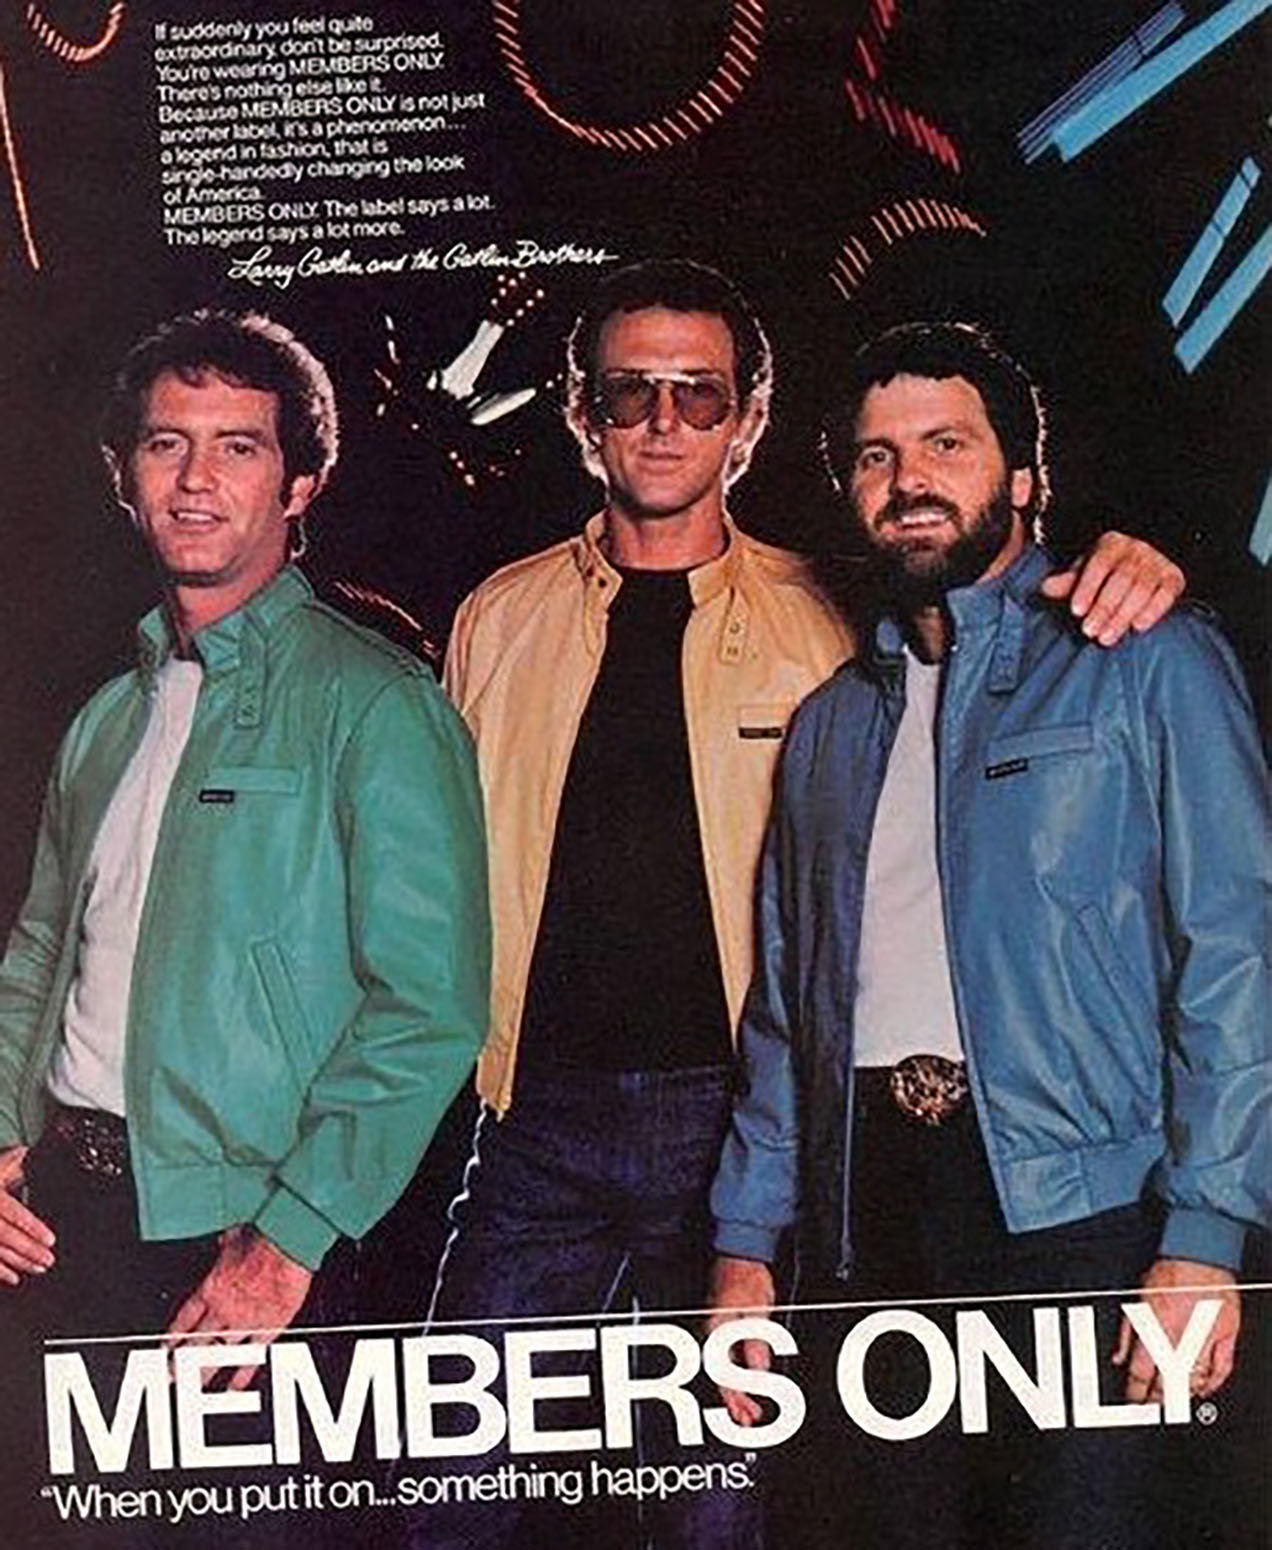 Despite hours and hours of trying, I can't figure out a way to upload any of my old outfits to the cloud – not even my 1983 Members Only faux-leather jacket.